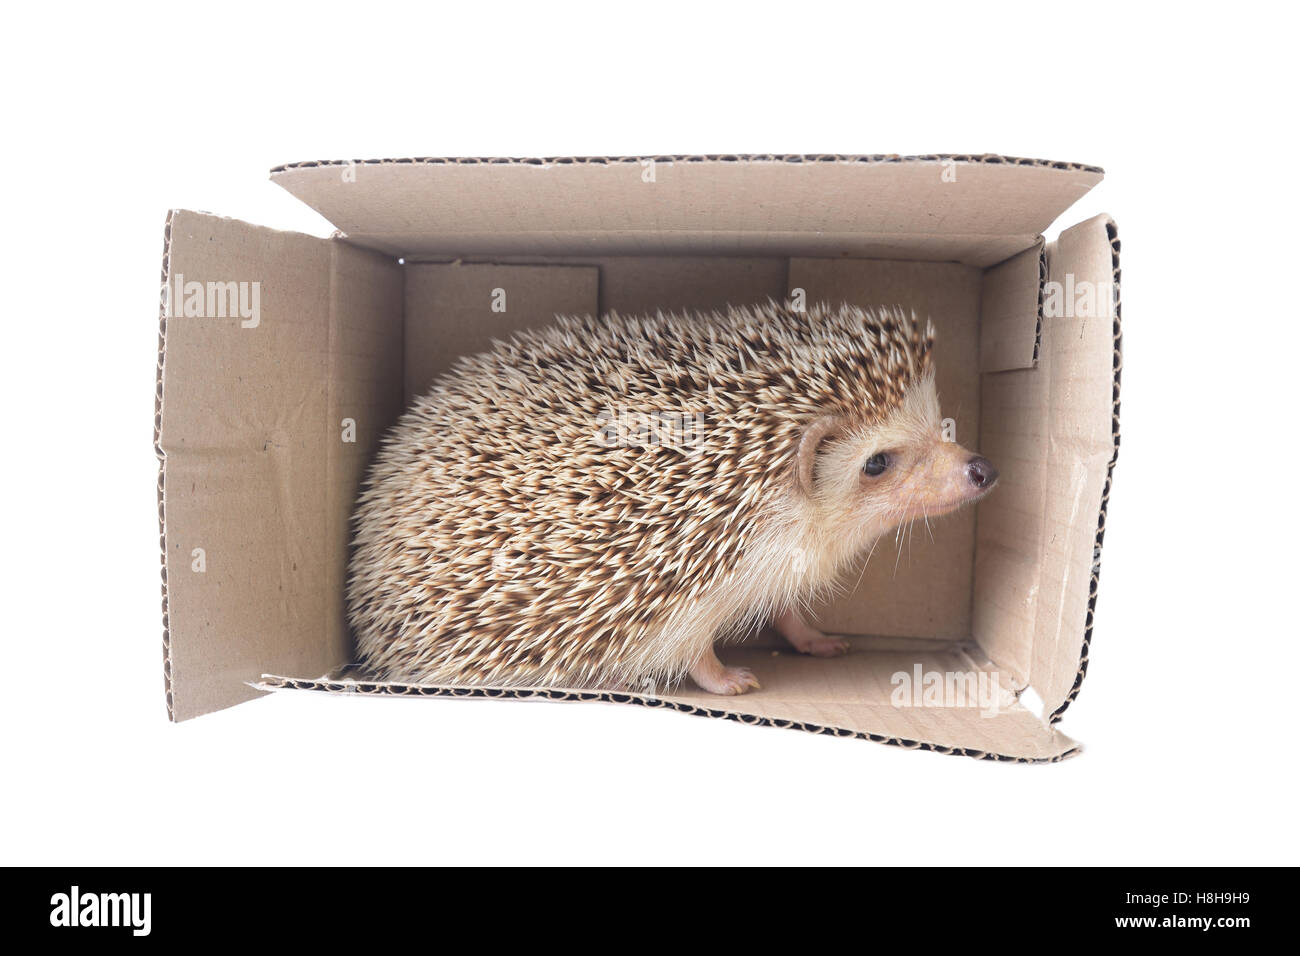 Hedgehog standing in brown paper box on white background. Stock Photo